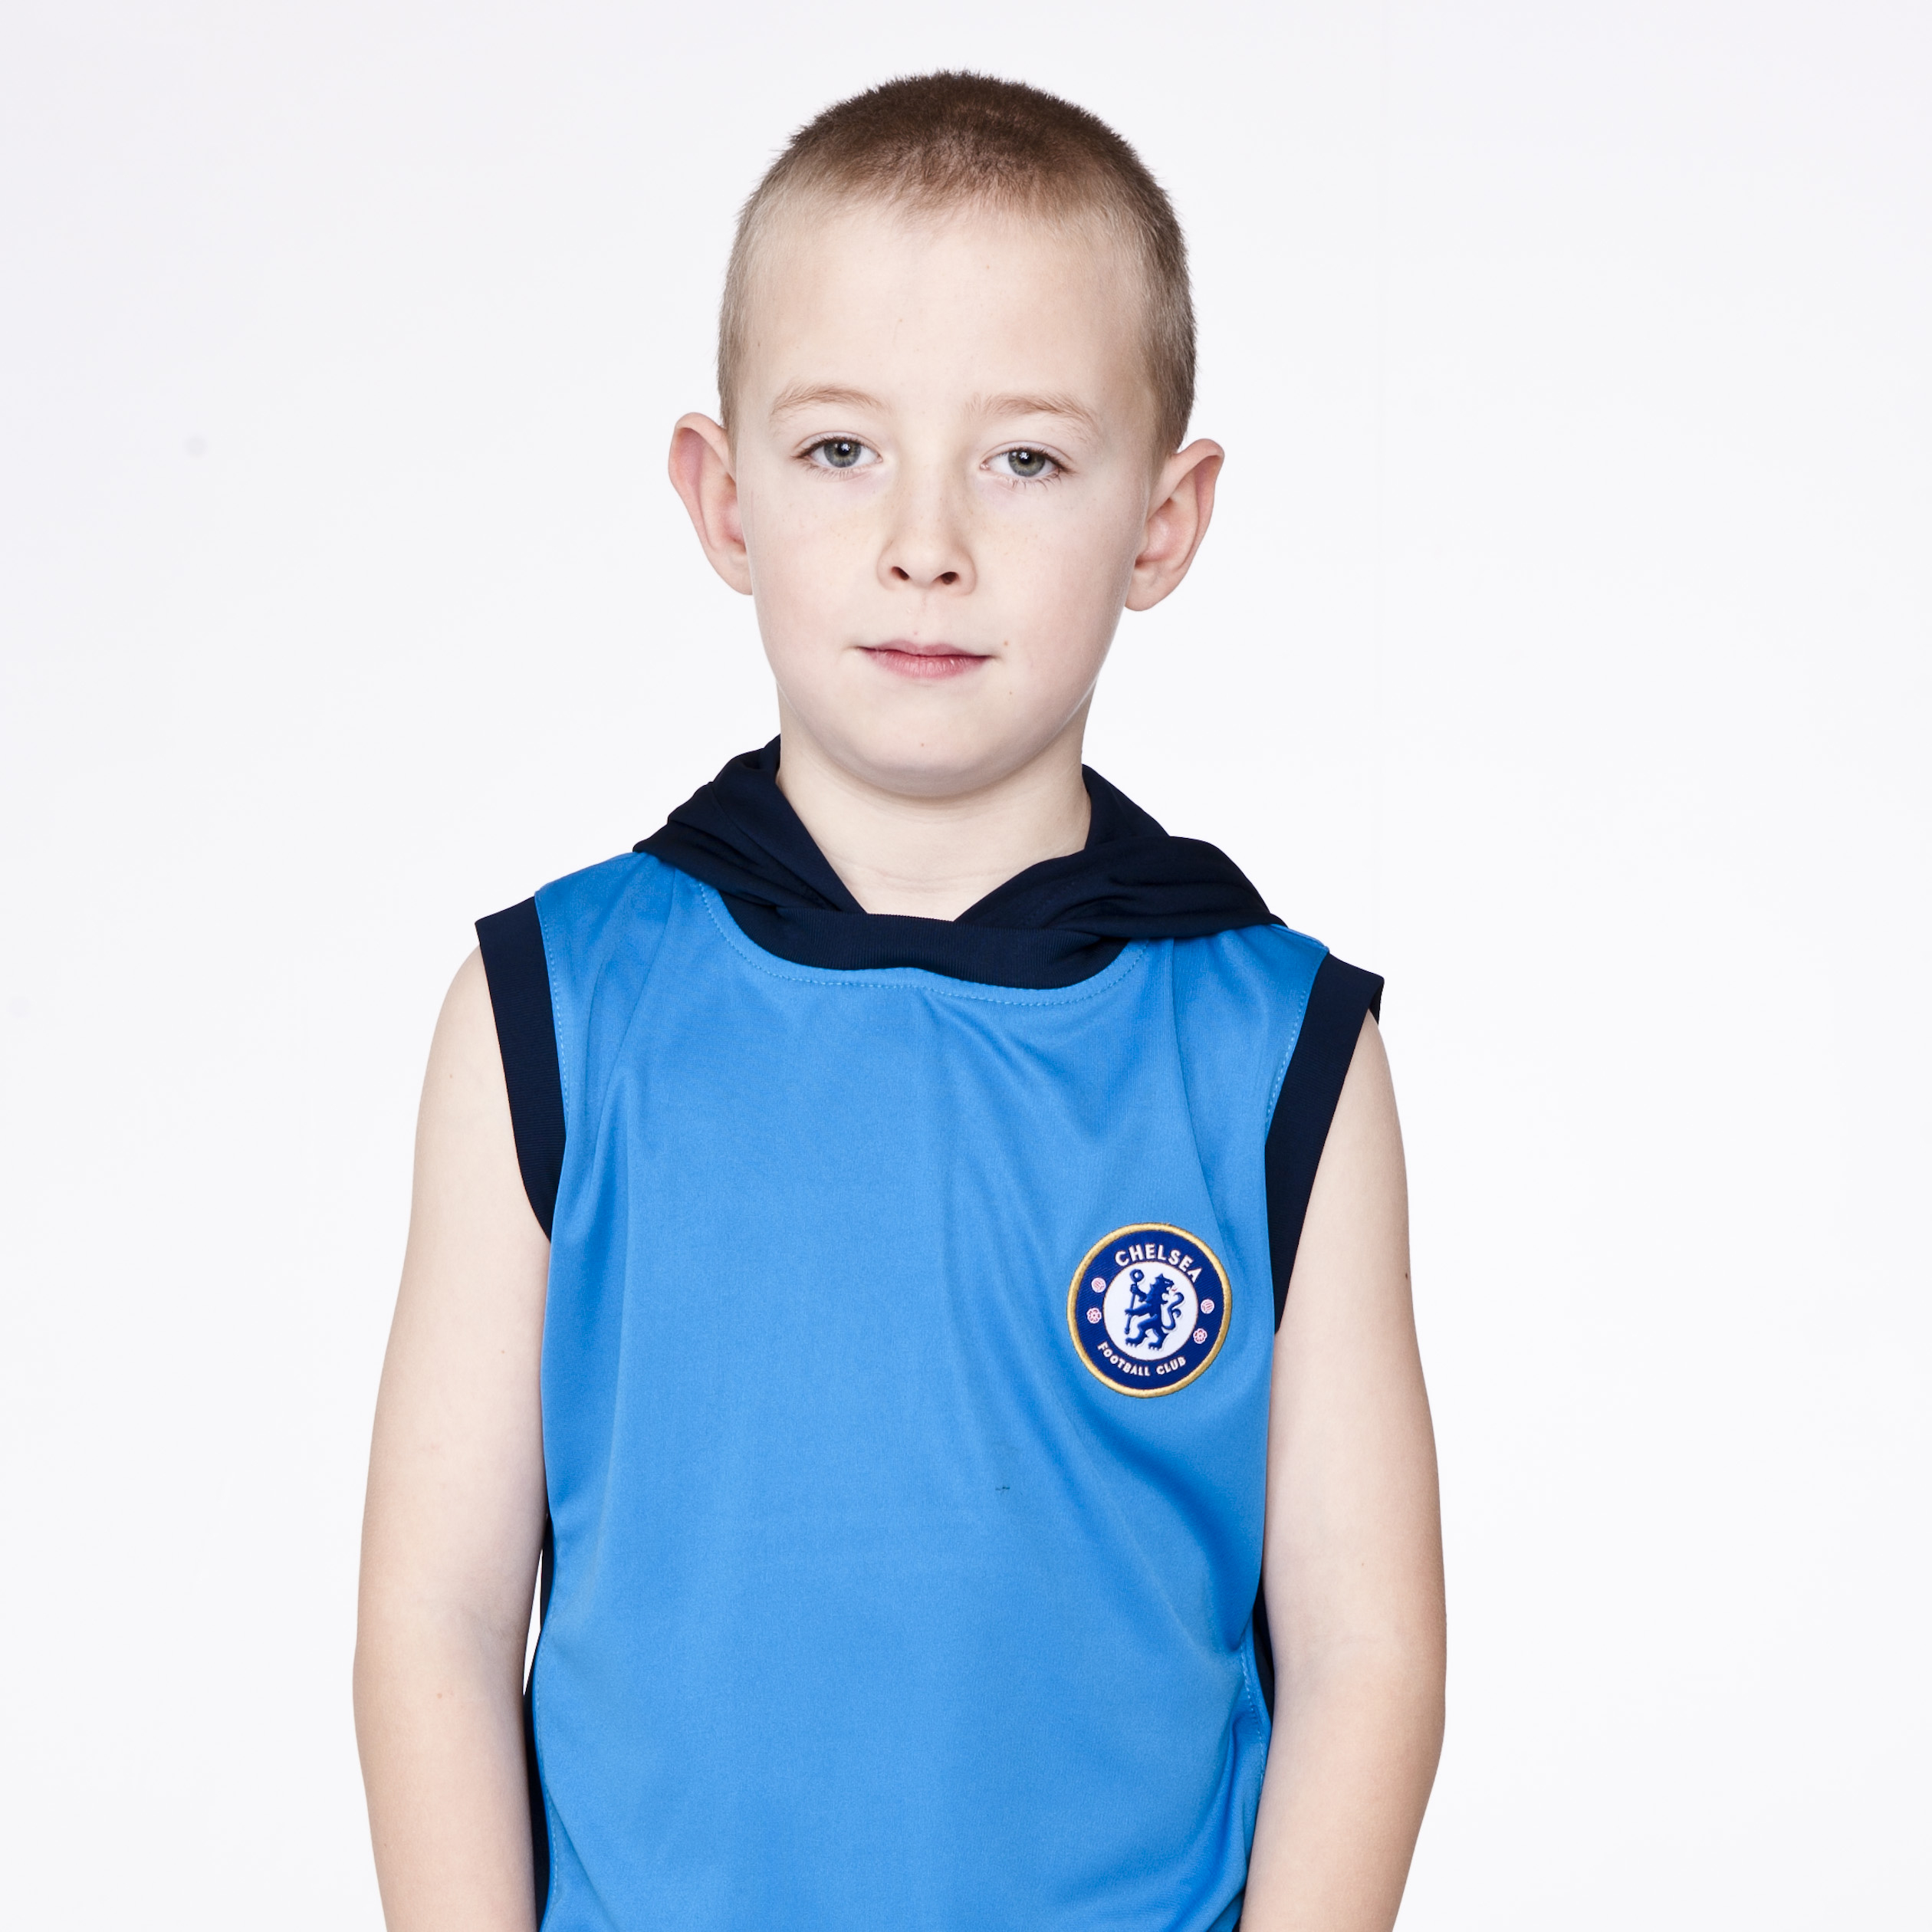 Chelsea Core Poly Hooded Sleeveless Top - Brilliant Blue - Boys